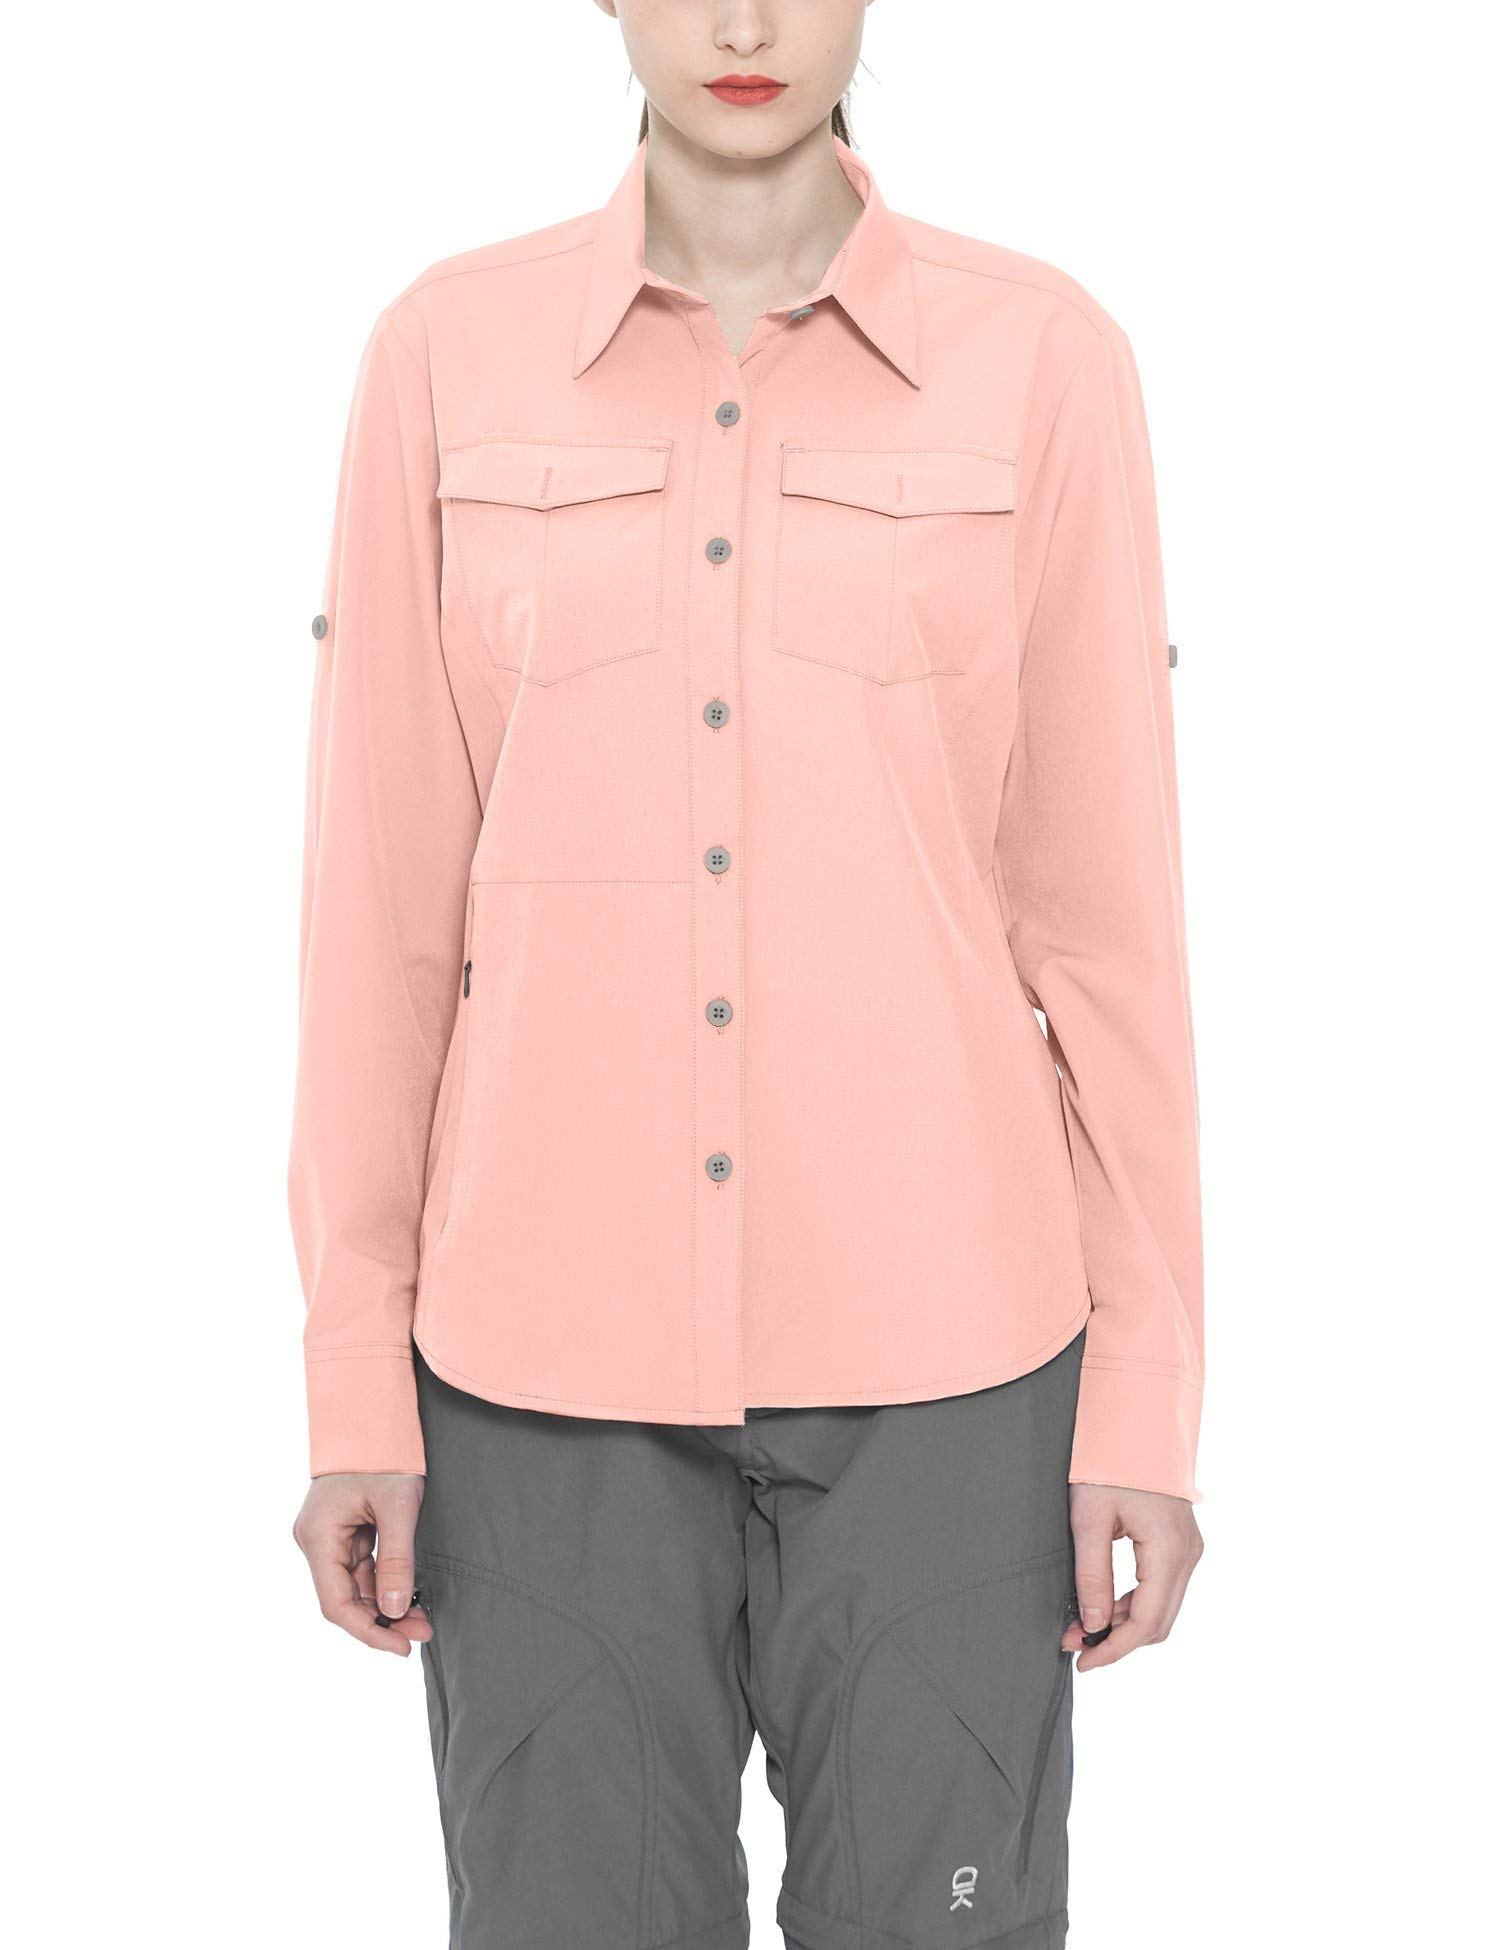 Little Donkey Andy Women's Stretch Quick Dry Water Resistant Outdoor Shirts UPF50+ for Hiking, Travel, Camping Pink Size M by Little Donkey Andy